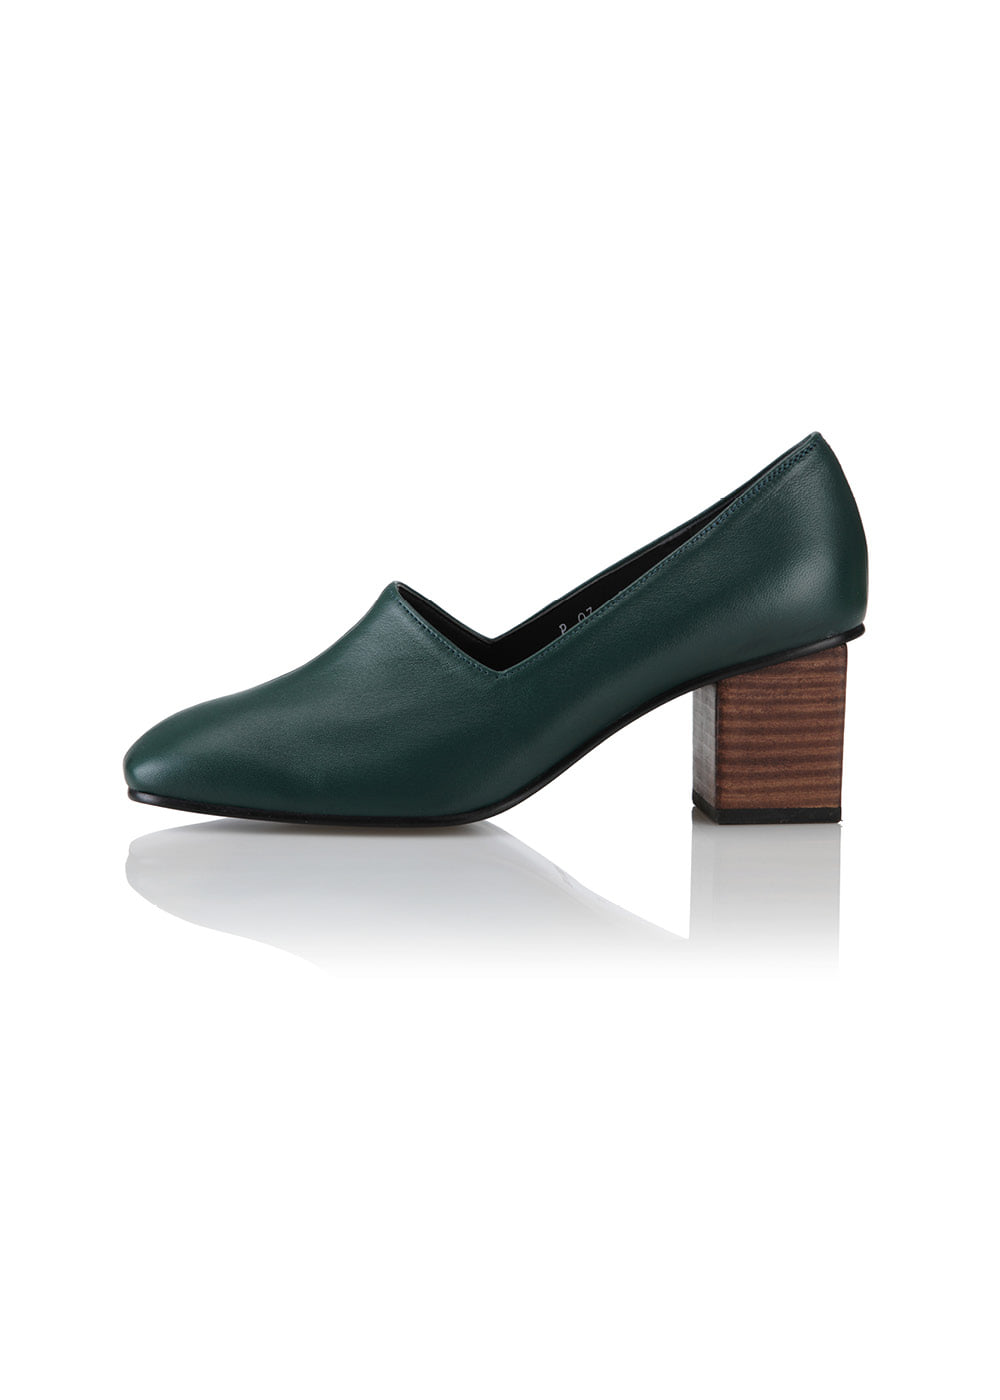 Layer Mori Pumps / YY7A-P07 / 4 colors